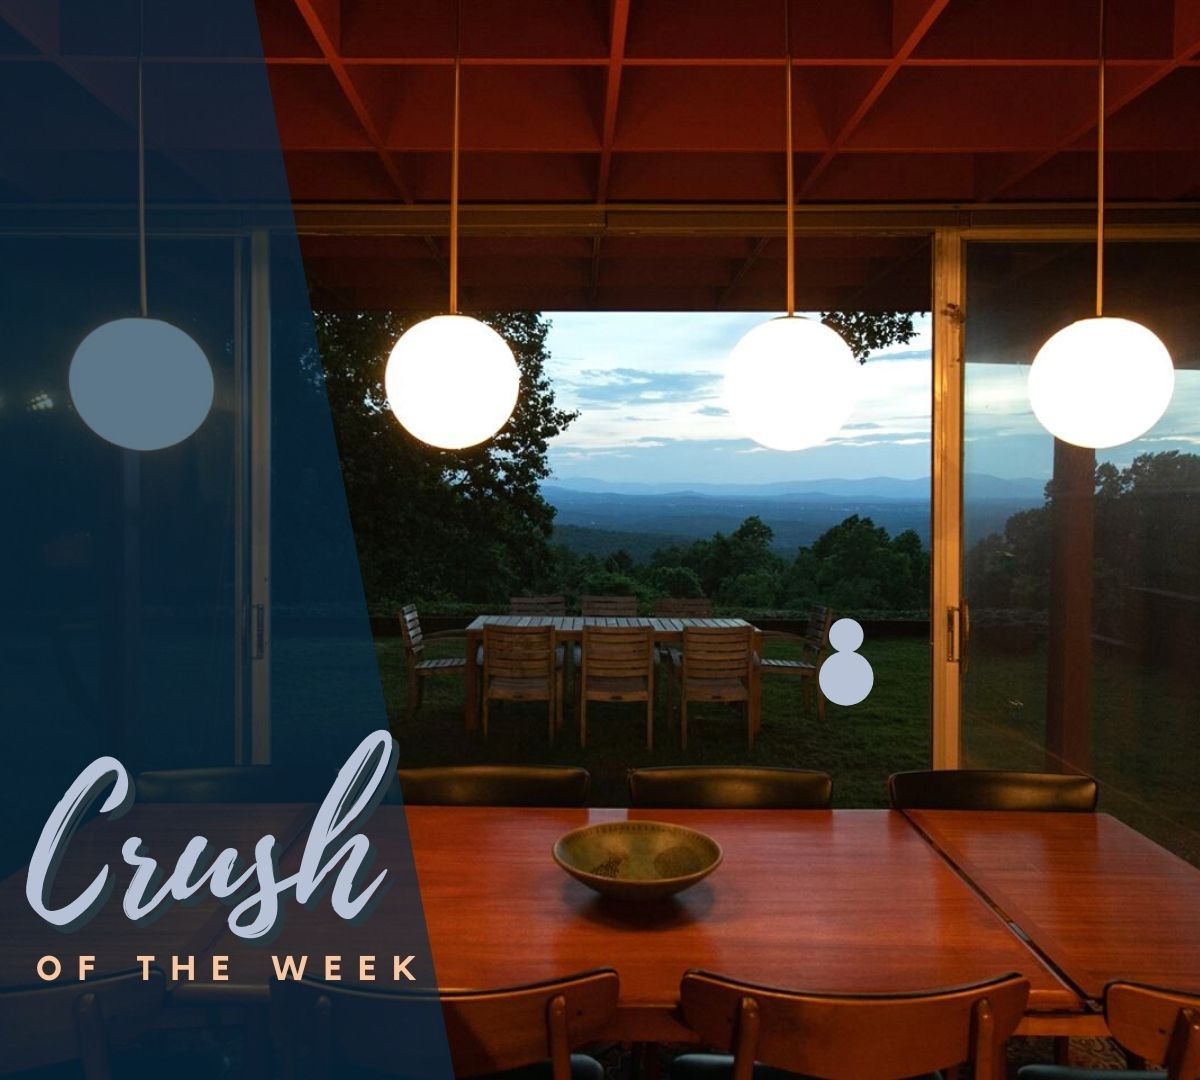 cotw frank lloyd right featured image of evening mountain view from the dining room